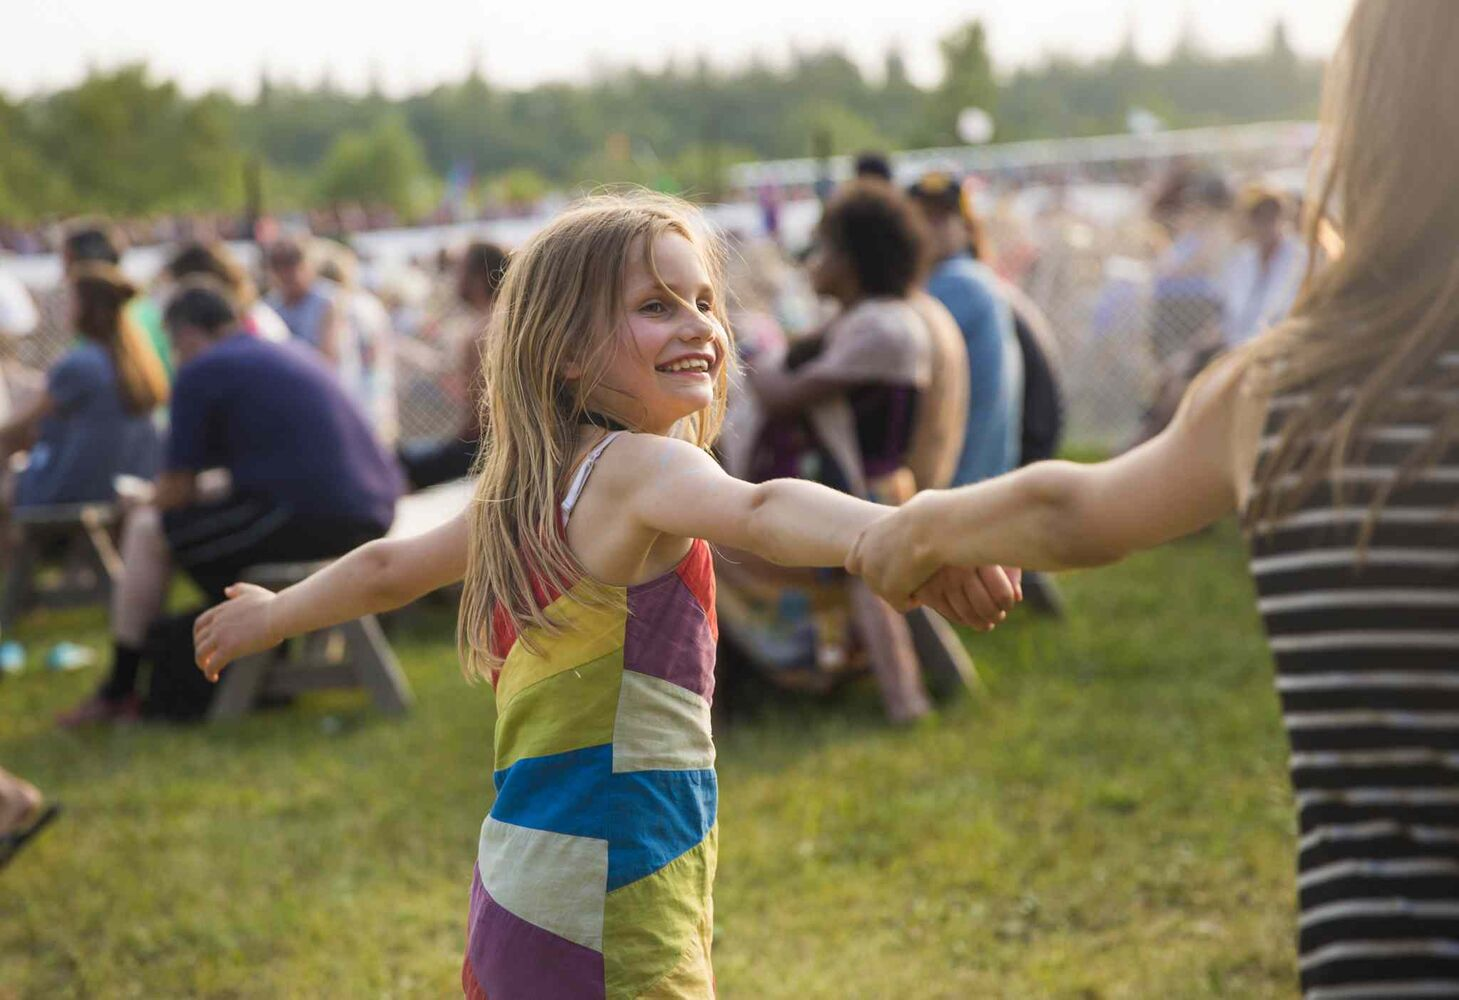 Arielle Derksen, 8, plays with her sister at the Winnipeg Folk Festival in Birds Hill Park on Friday, July 10, 2015.   Mikaela MacKenzie / Winnipeg Free Press (Winnipeg Free Press)